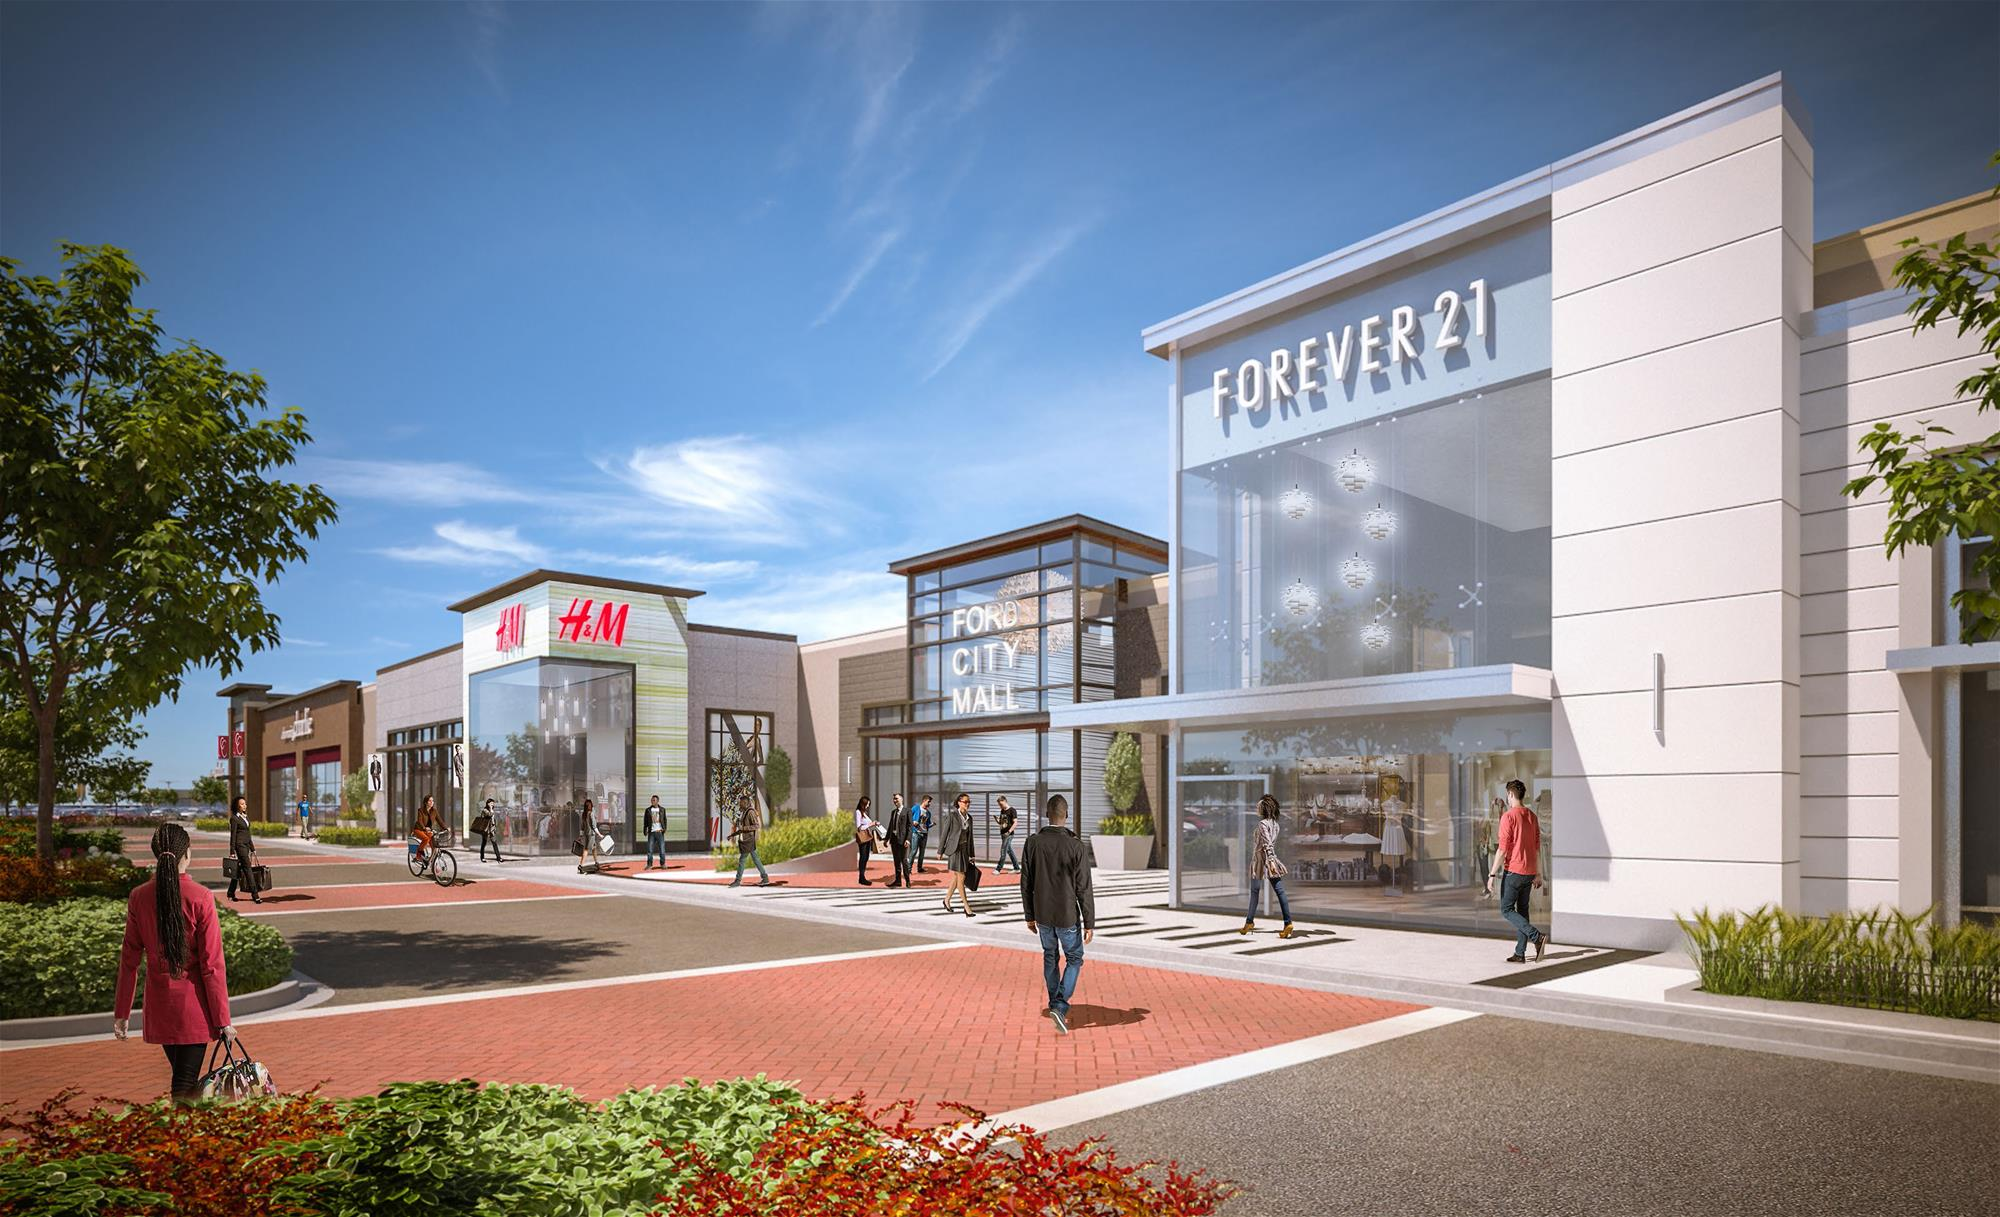 Mid america secures new retail leases in chicago area for 1 mid america plaza oakbrook terrace il